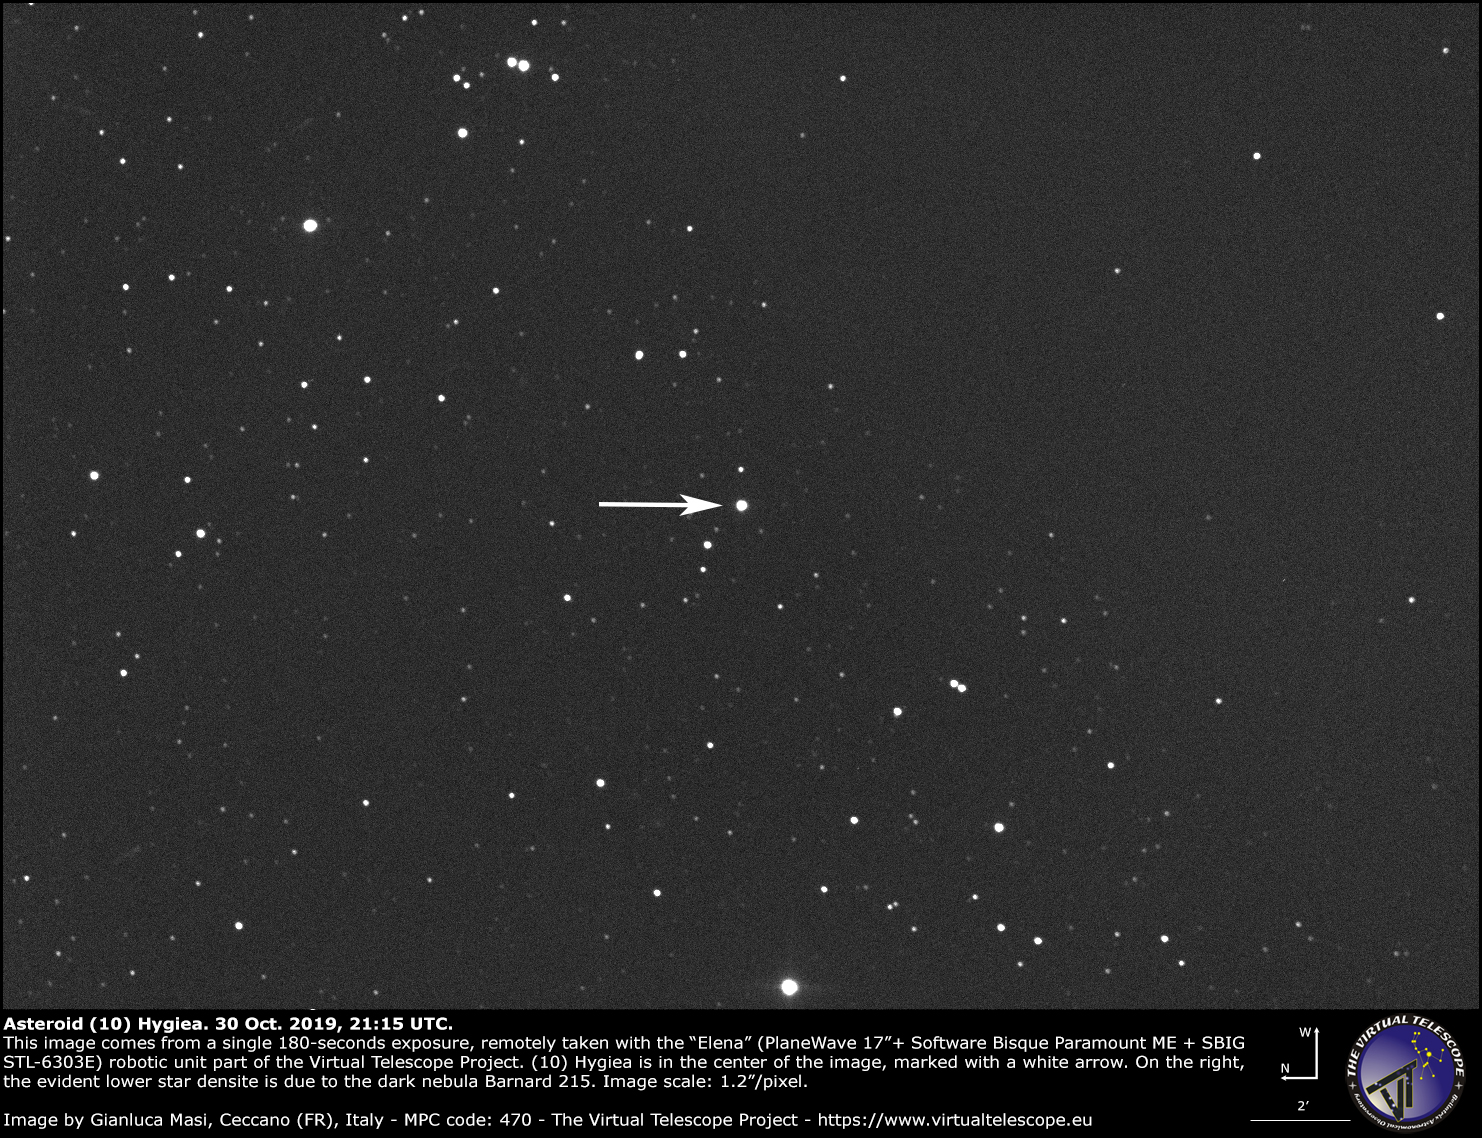 Asteroid (10) Hygiea - 30 Oct. 2019